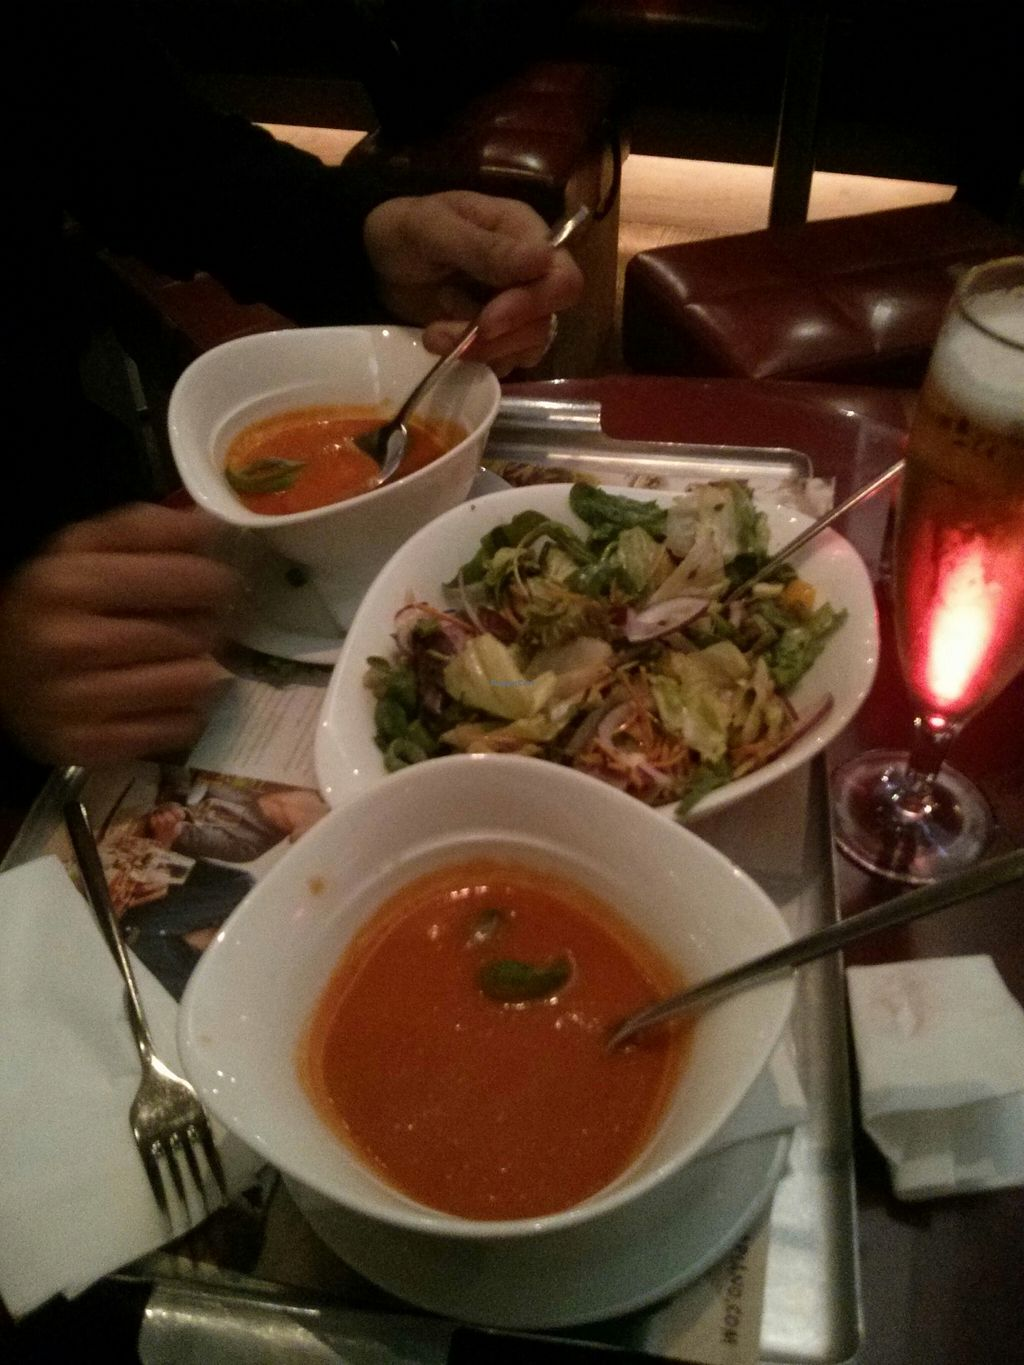 """Photo of Vapiano  by <a href=""""/members/profile/hadasalex"""">hadasalex</a> <br/>salat and fantastic tomato soup <br/> October 18, 2015  - <a href='/contact/abuse/image/64650/121752'>Report</a>"""